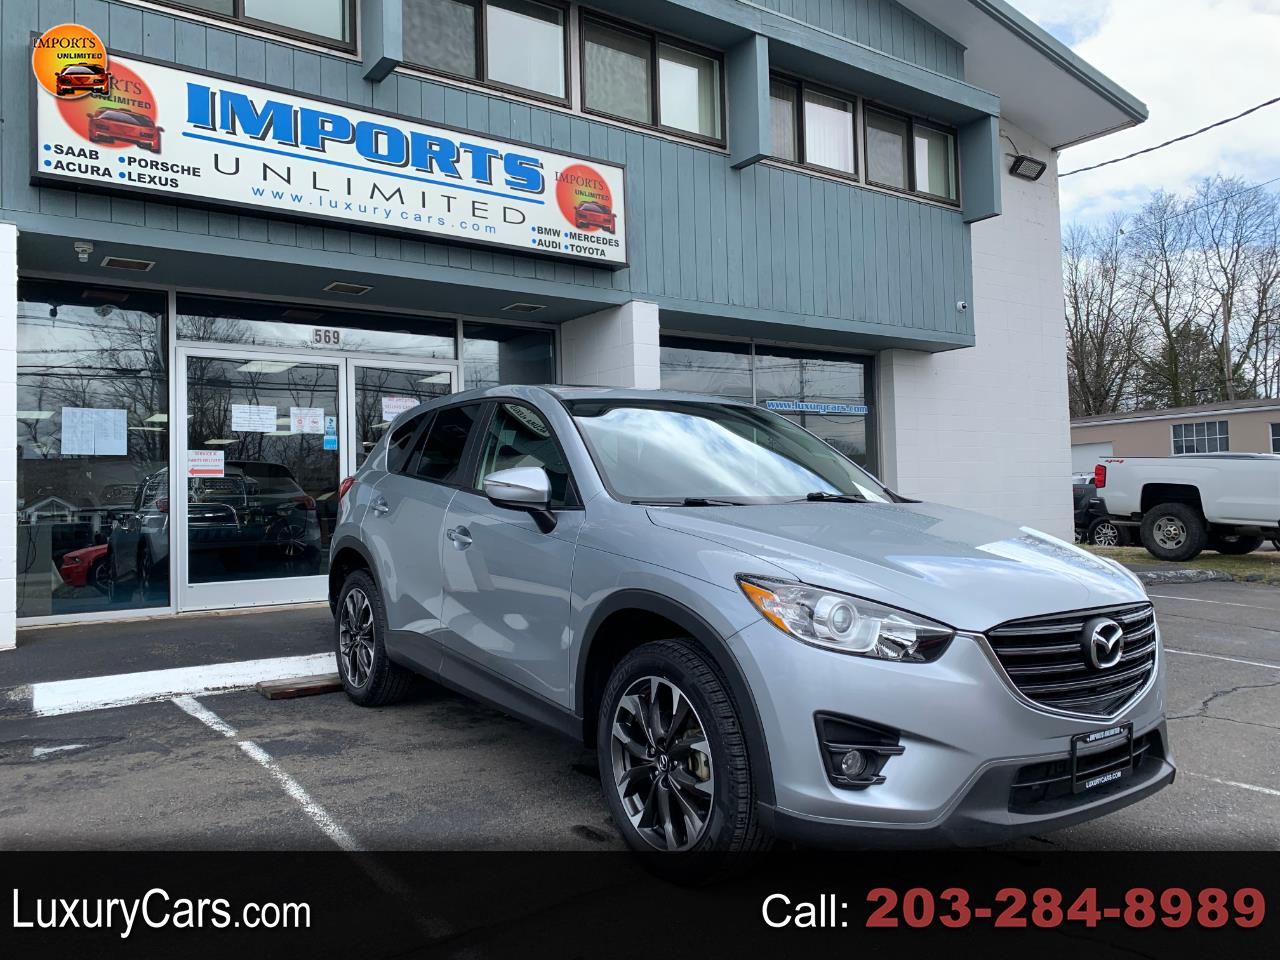 Mazda CX-5 2016.5 FWD 4dr Auto Grand Touring 2016